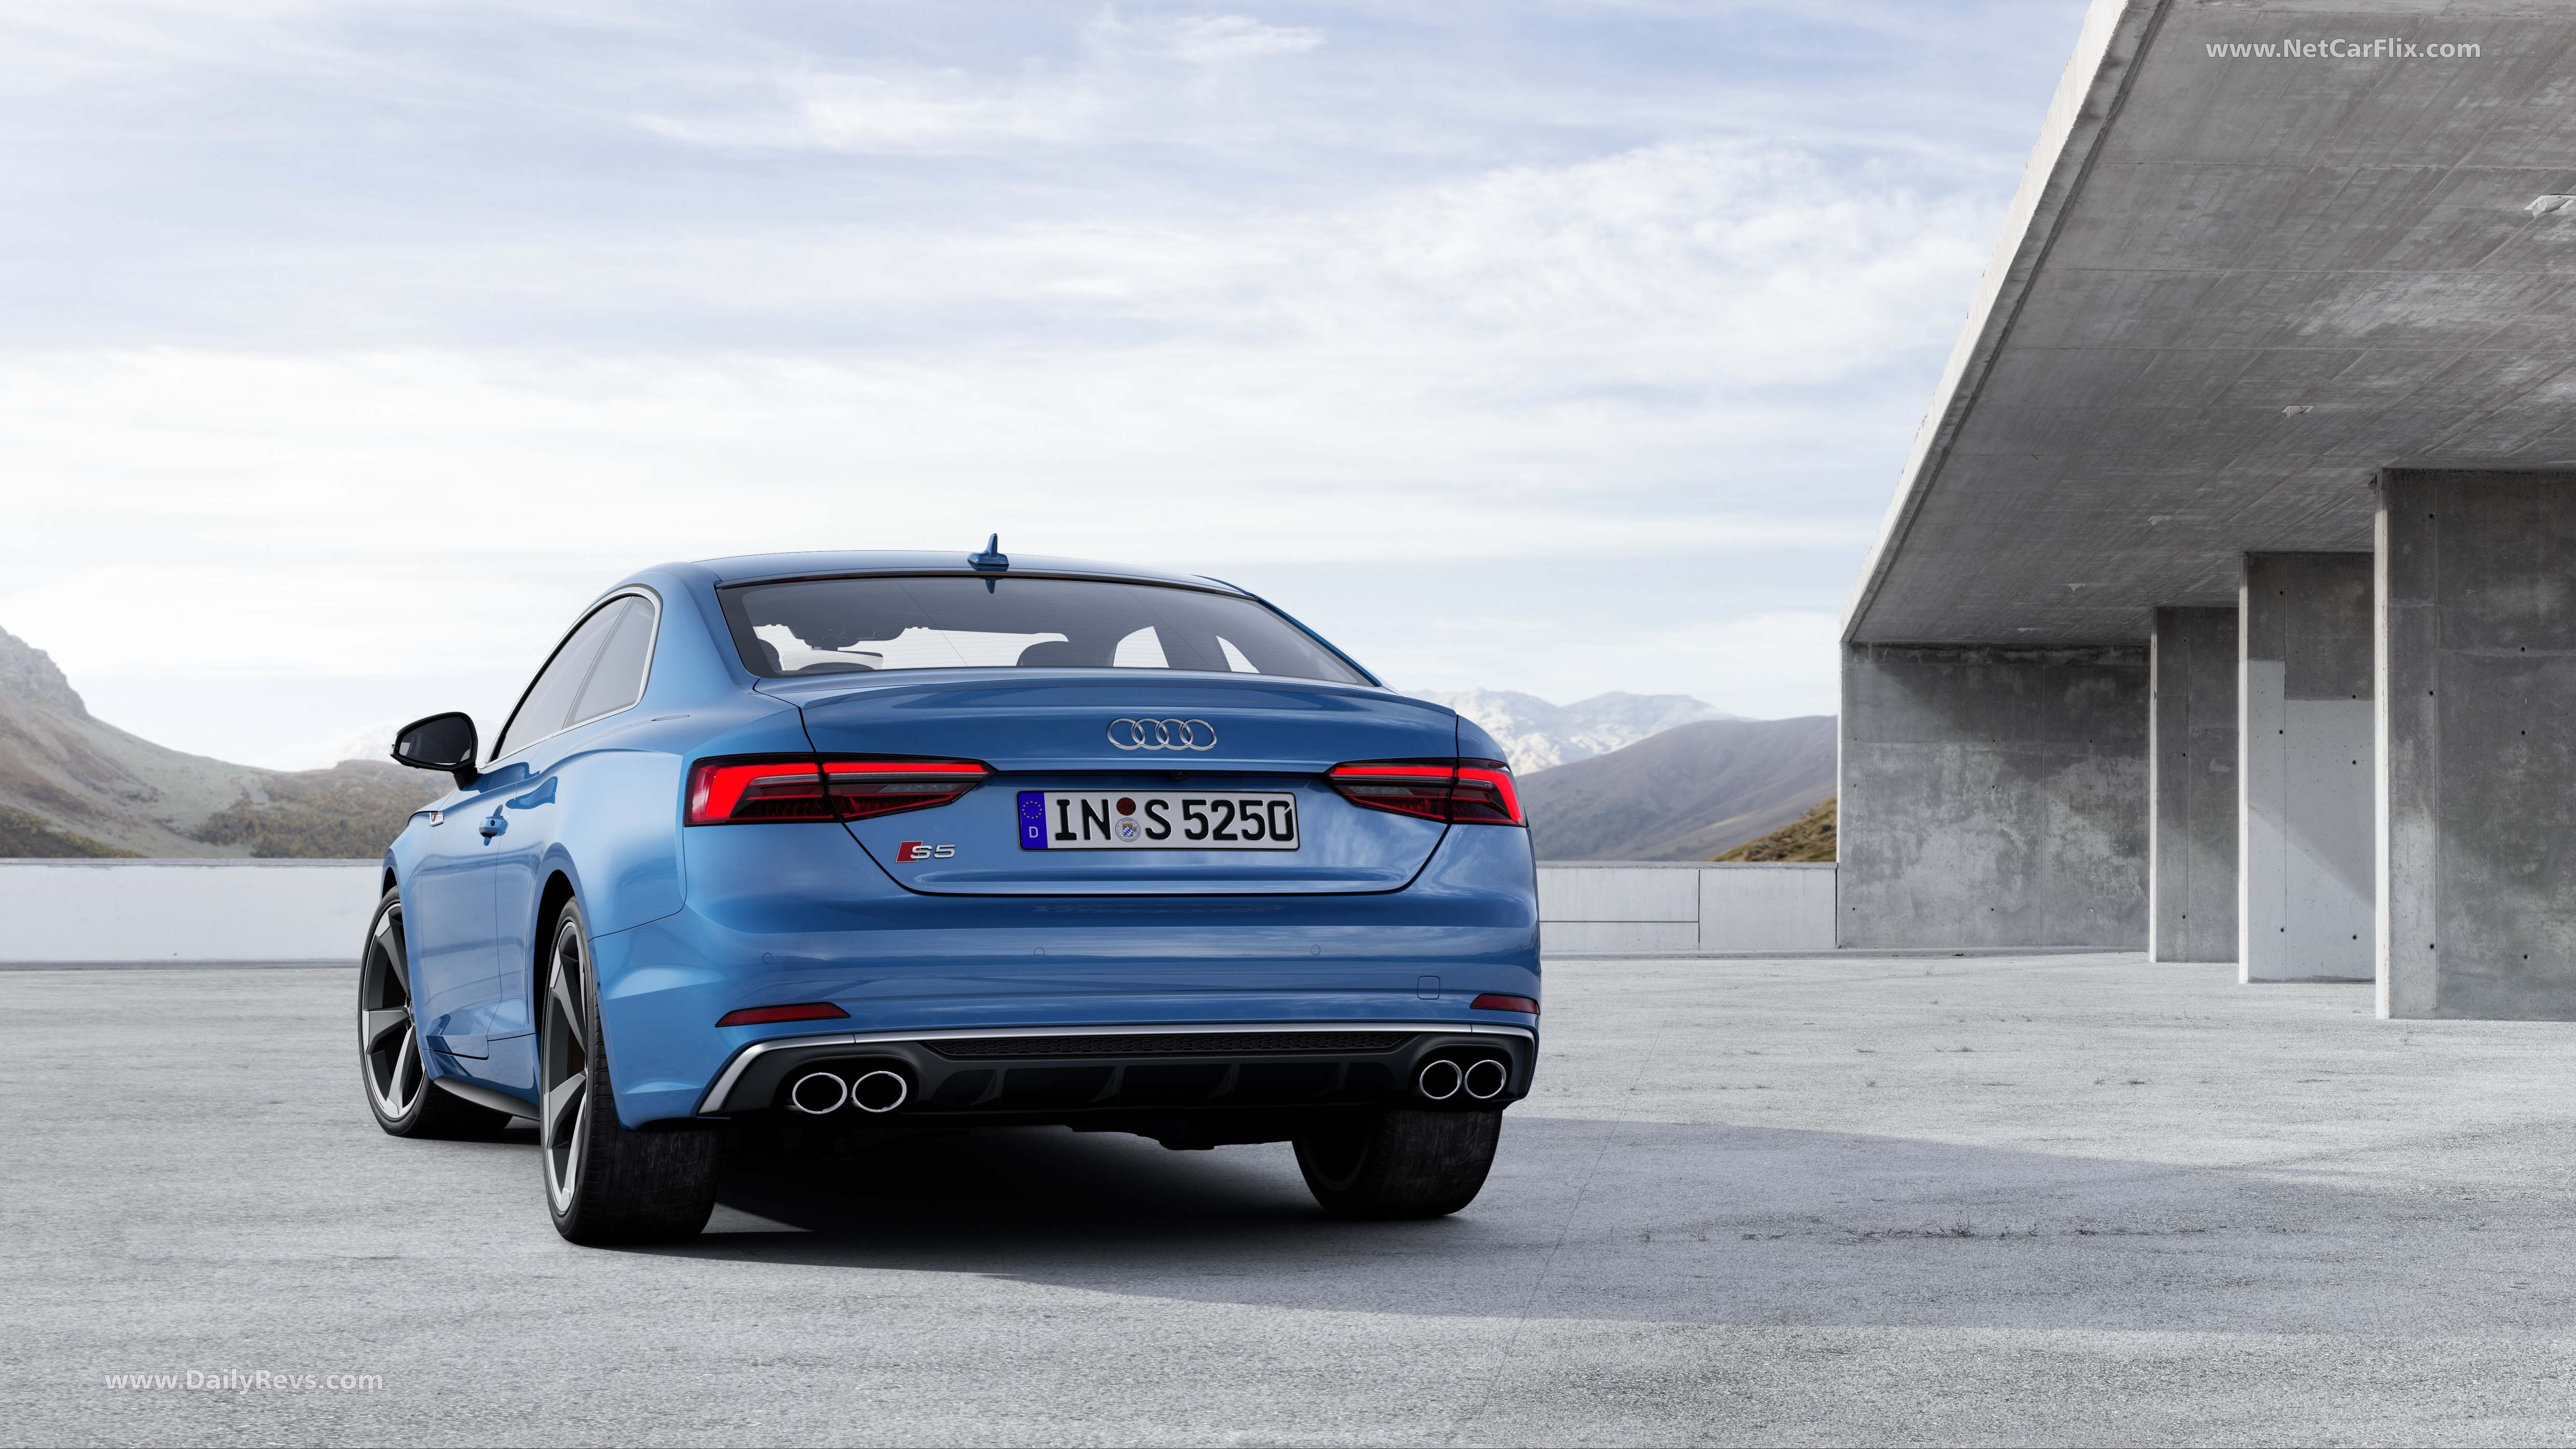 2019 Audi S5 Coupe TDI - HD images, Specs, Information and ...